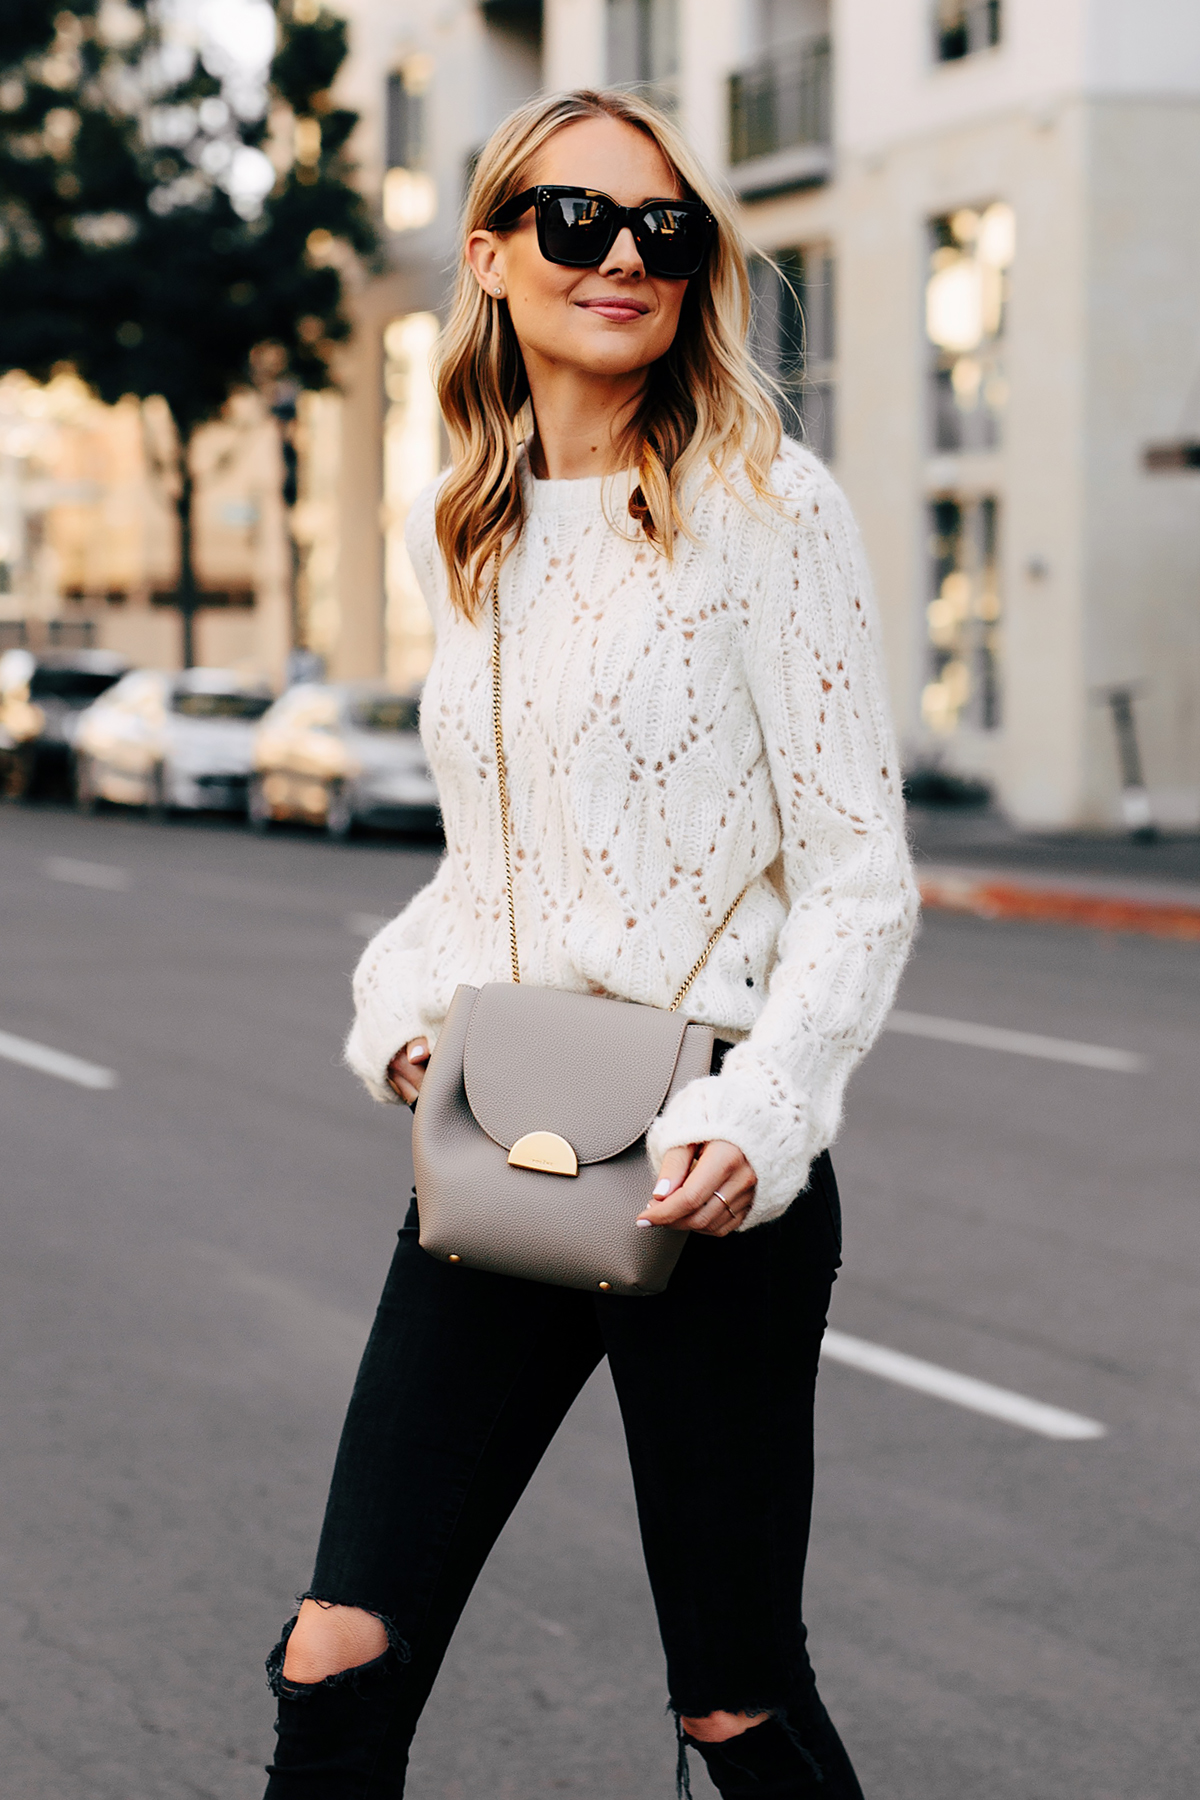 Blonde Woman Wearing Reformation White Pointelle Sweater Madewell Black Ripped Skinny Jeans Polene Grey Handbag Fashion Jackson San Diego Fashion Blogger Street Style